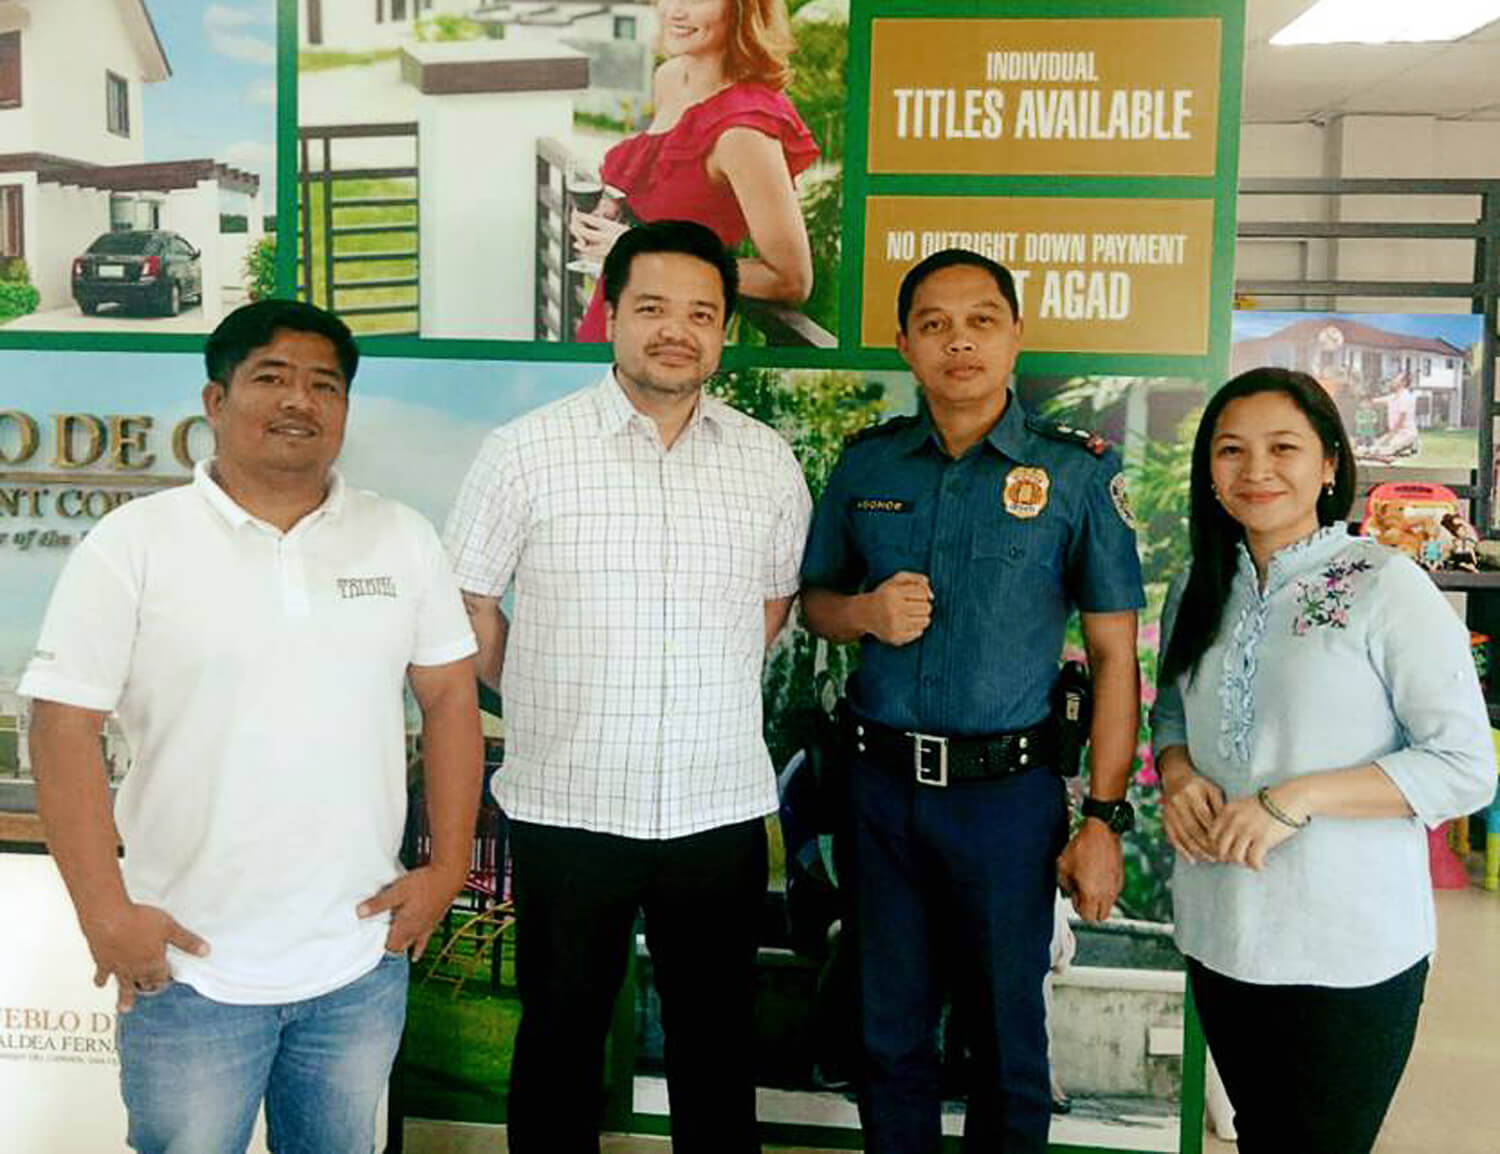 Pampanga - Police Chief